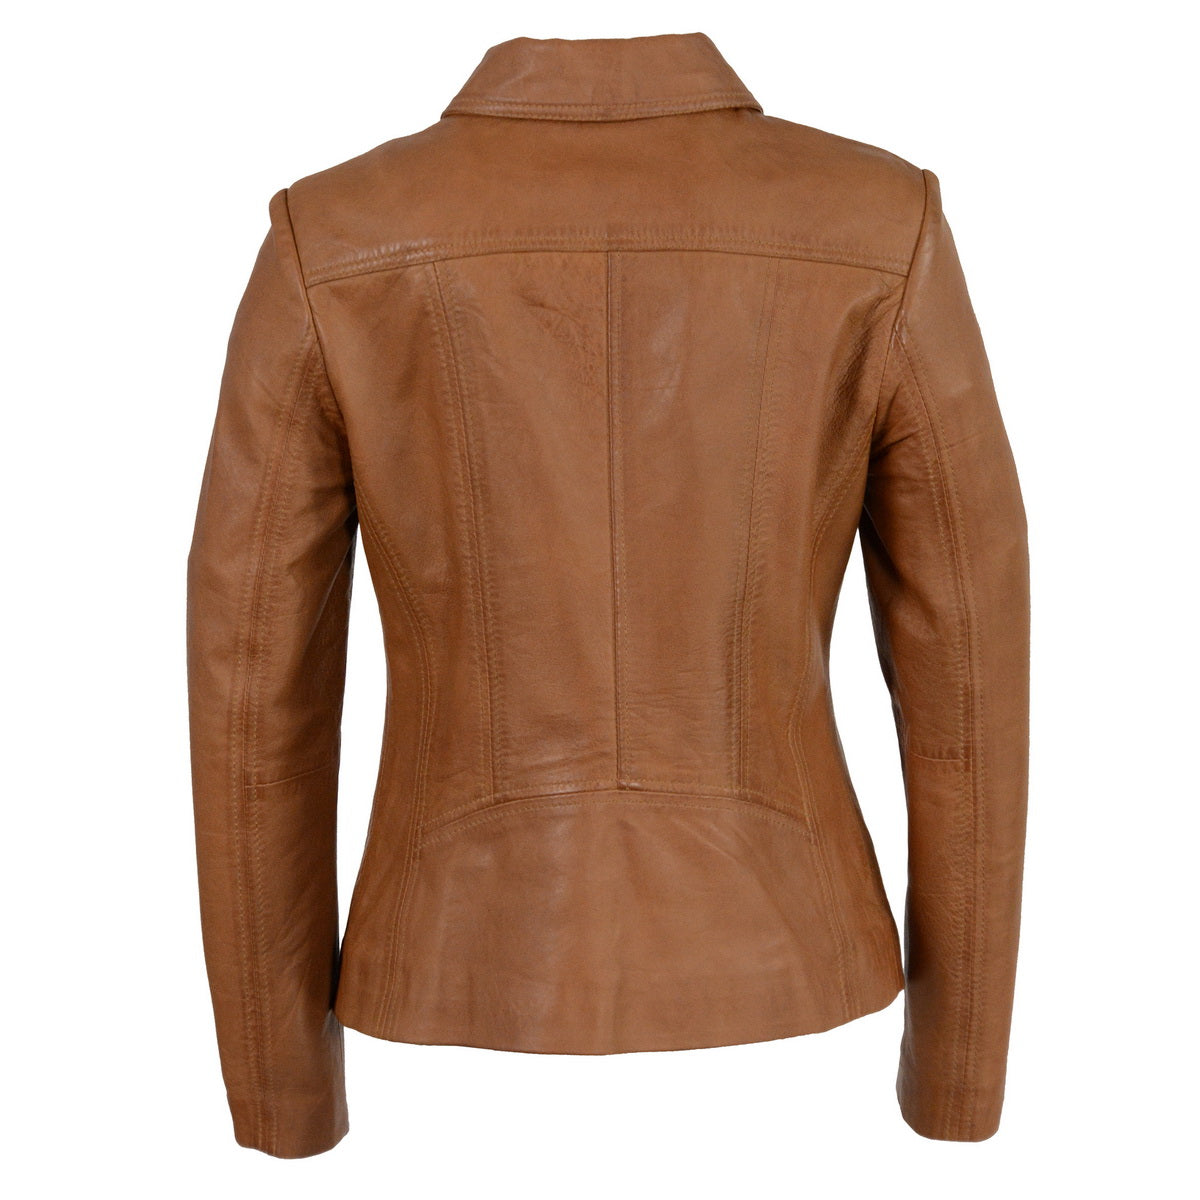 Milwaukee Leather SFL2850 Women's Saddle Leather Jacket with Shirt